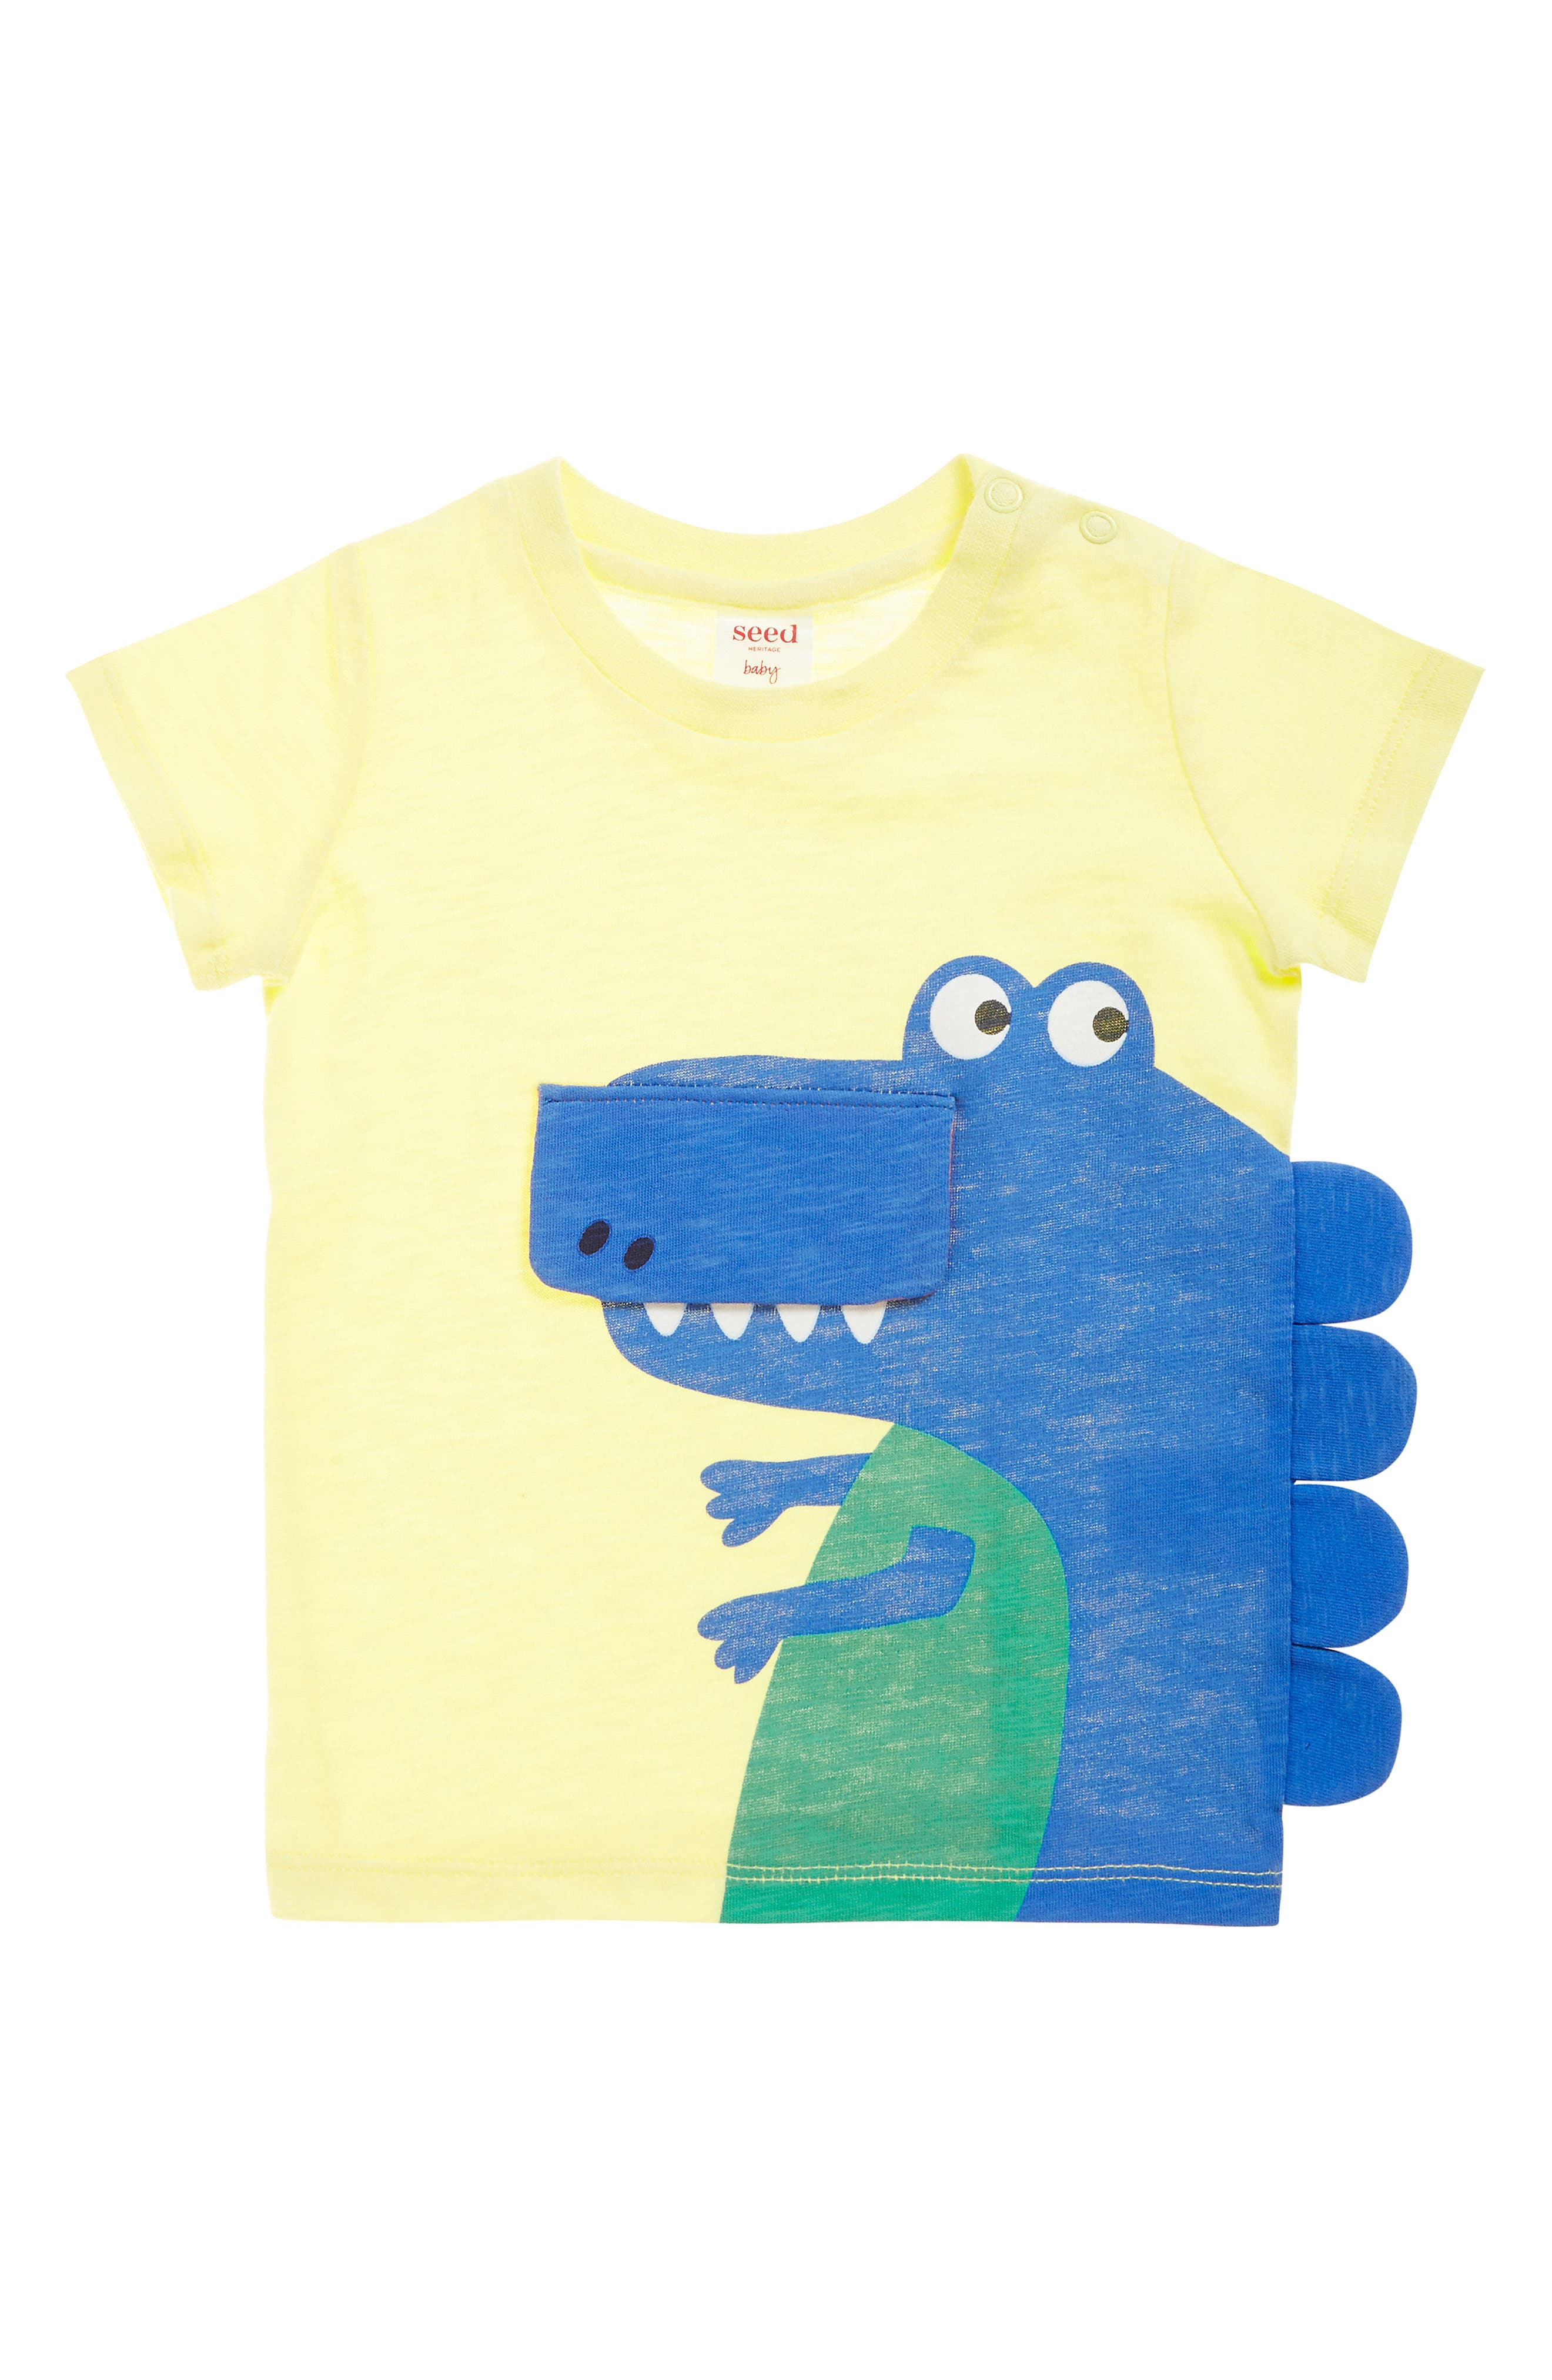 SEED HERITAGE Dino Flip T-Shirt, Main, color, 700